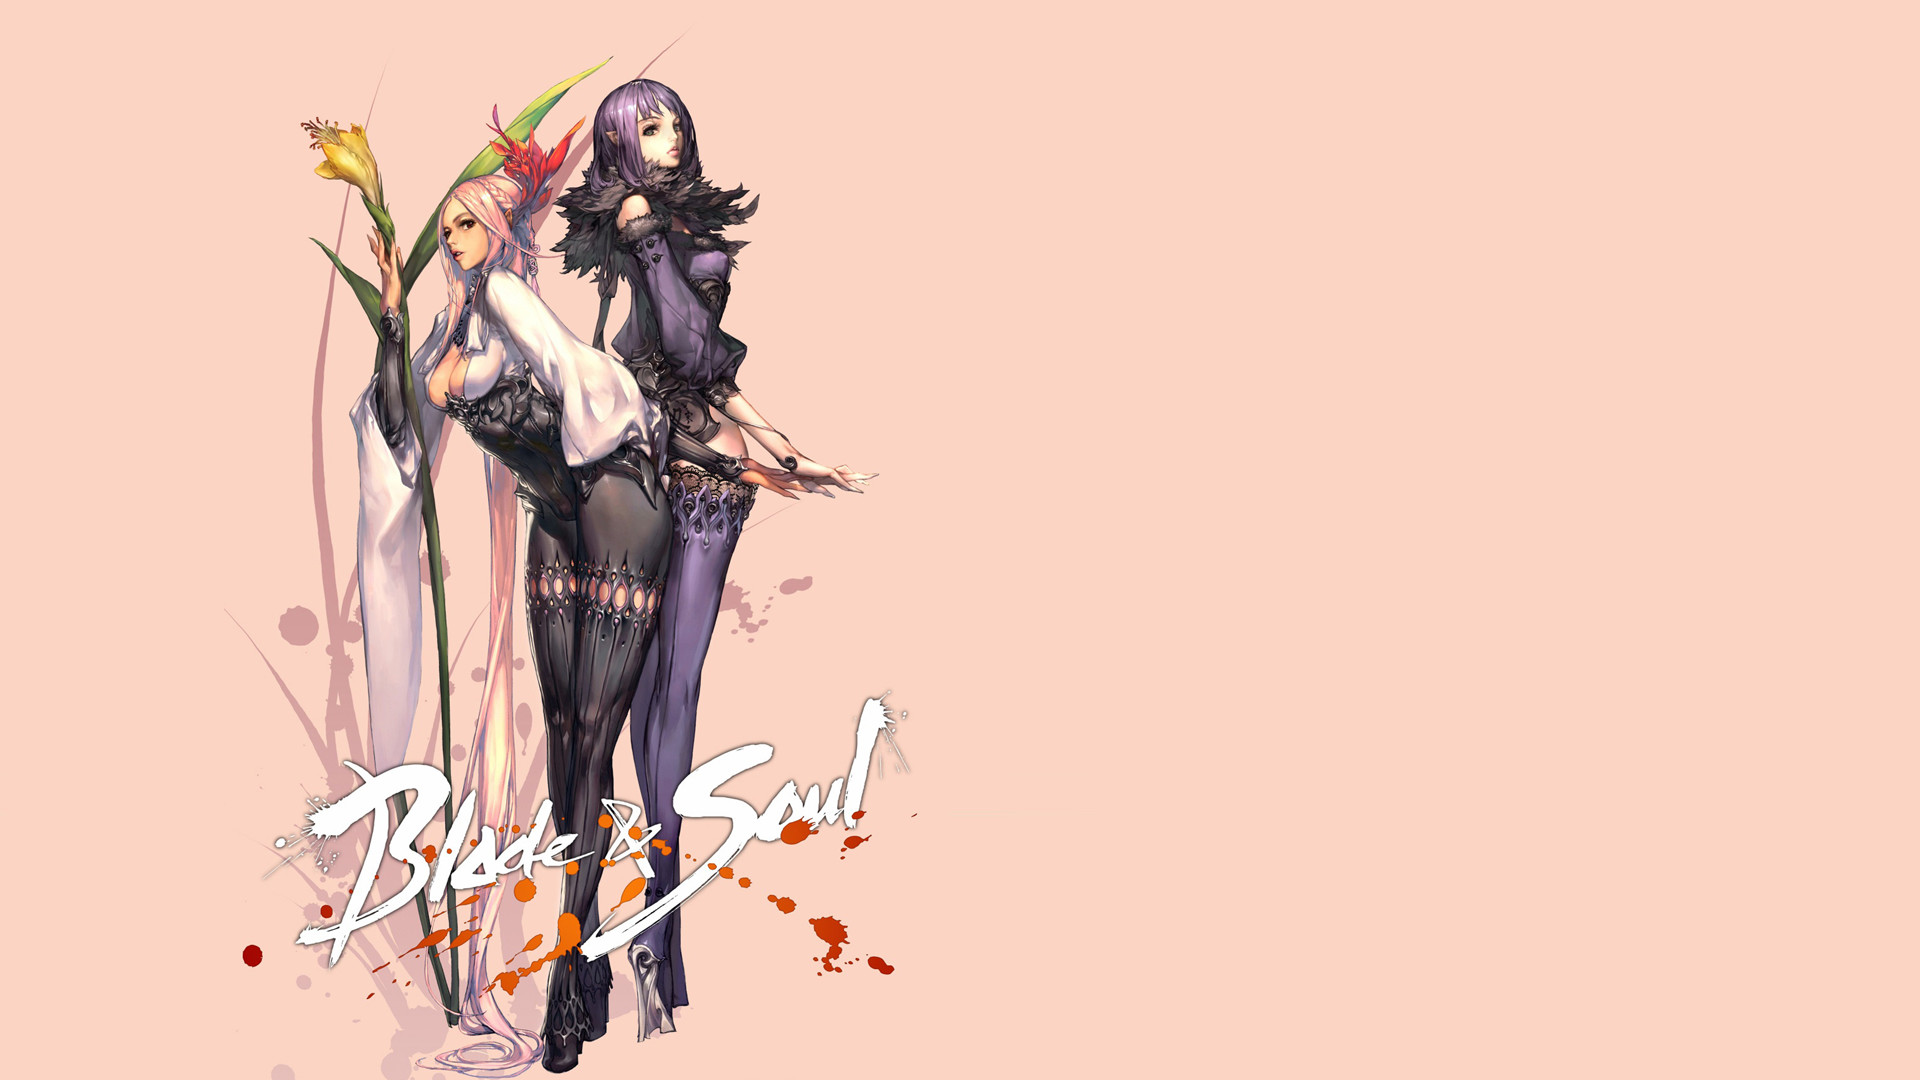 Download Blade And Soul Wallpaper Hd Backgrounds Download